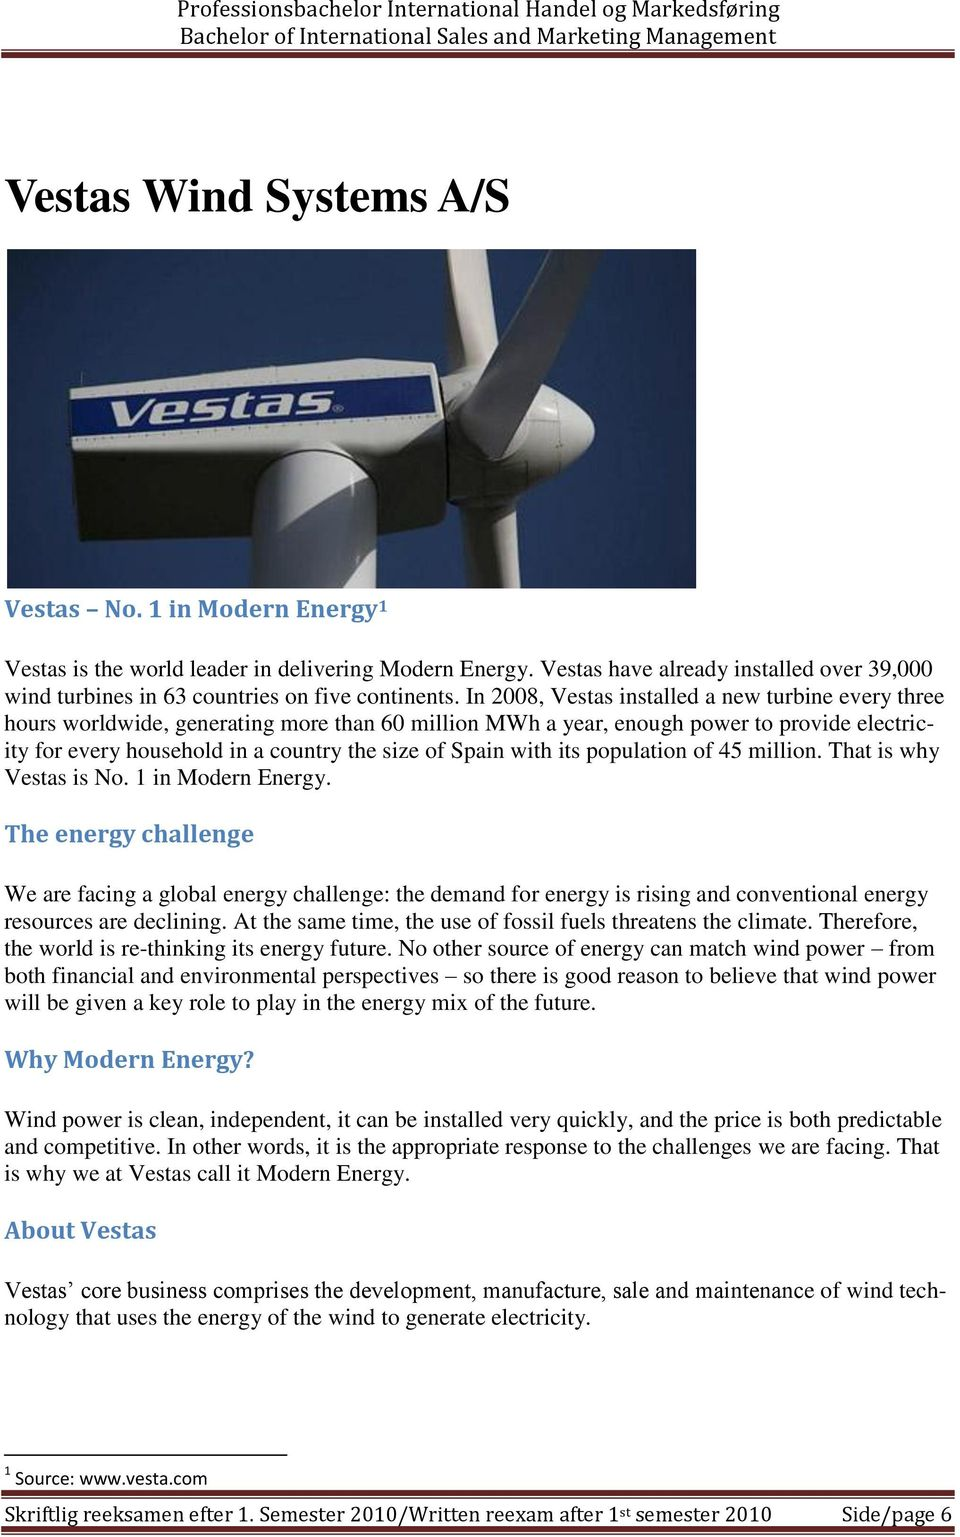 In 2008, Vestas installed a new turbine every three hours worldwide, generating more than 60 million MWh a year, enough power to provide electricity for every household in a country the size of Spain